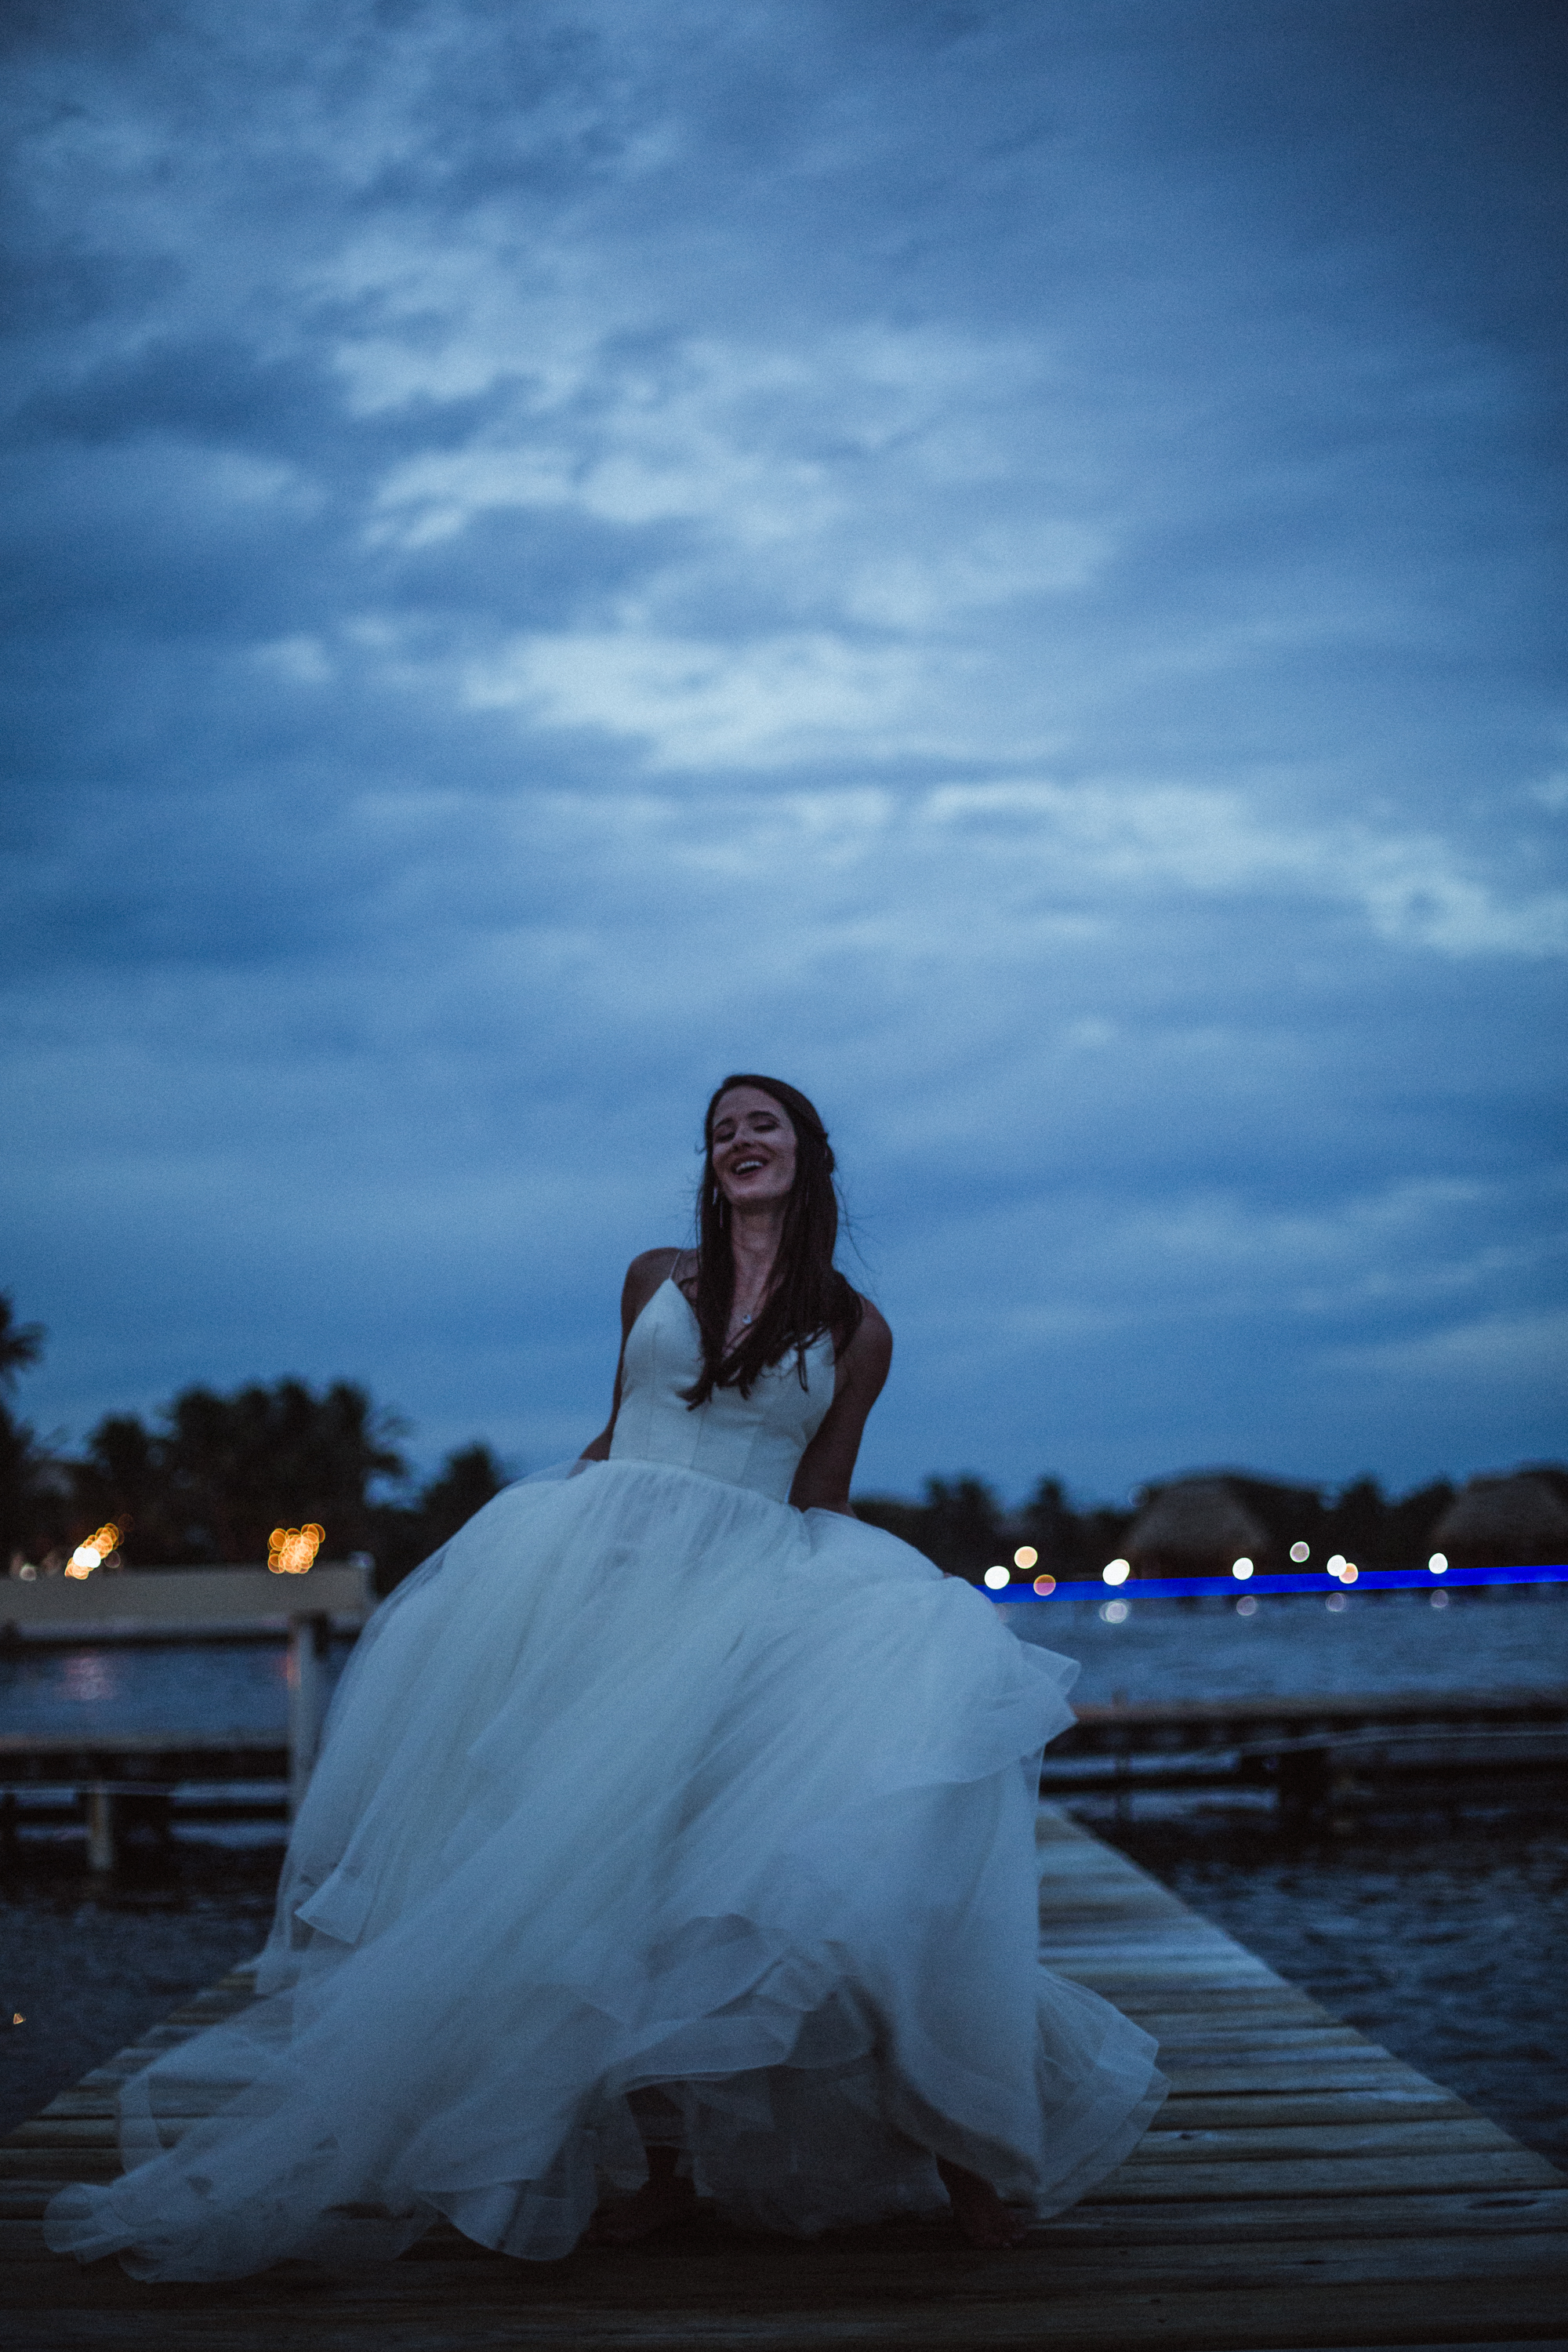 san-pescador-belize-wedding-christinemariephoto-j-k-153.jpg